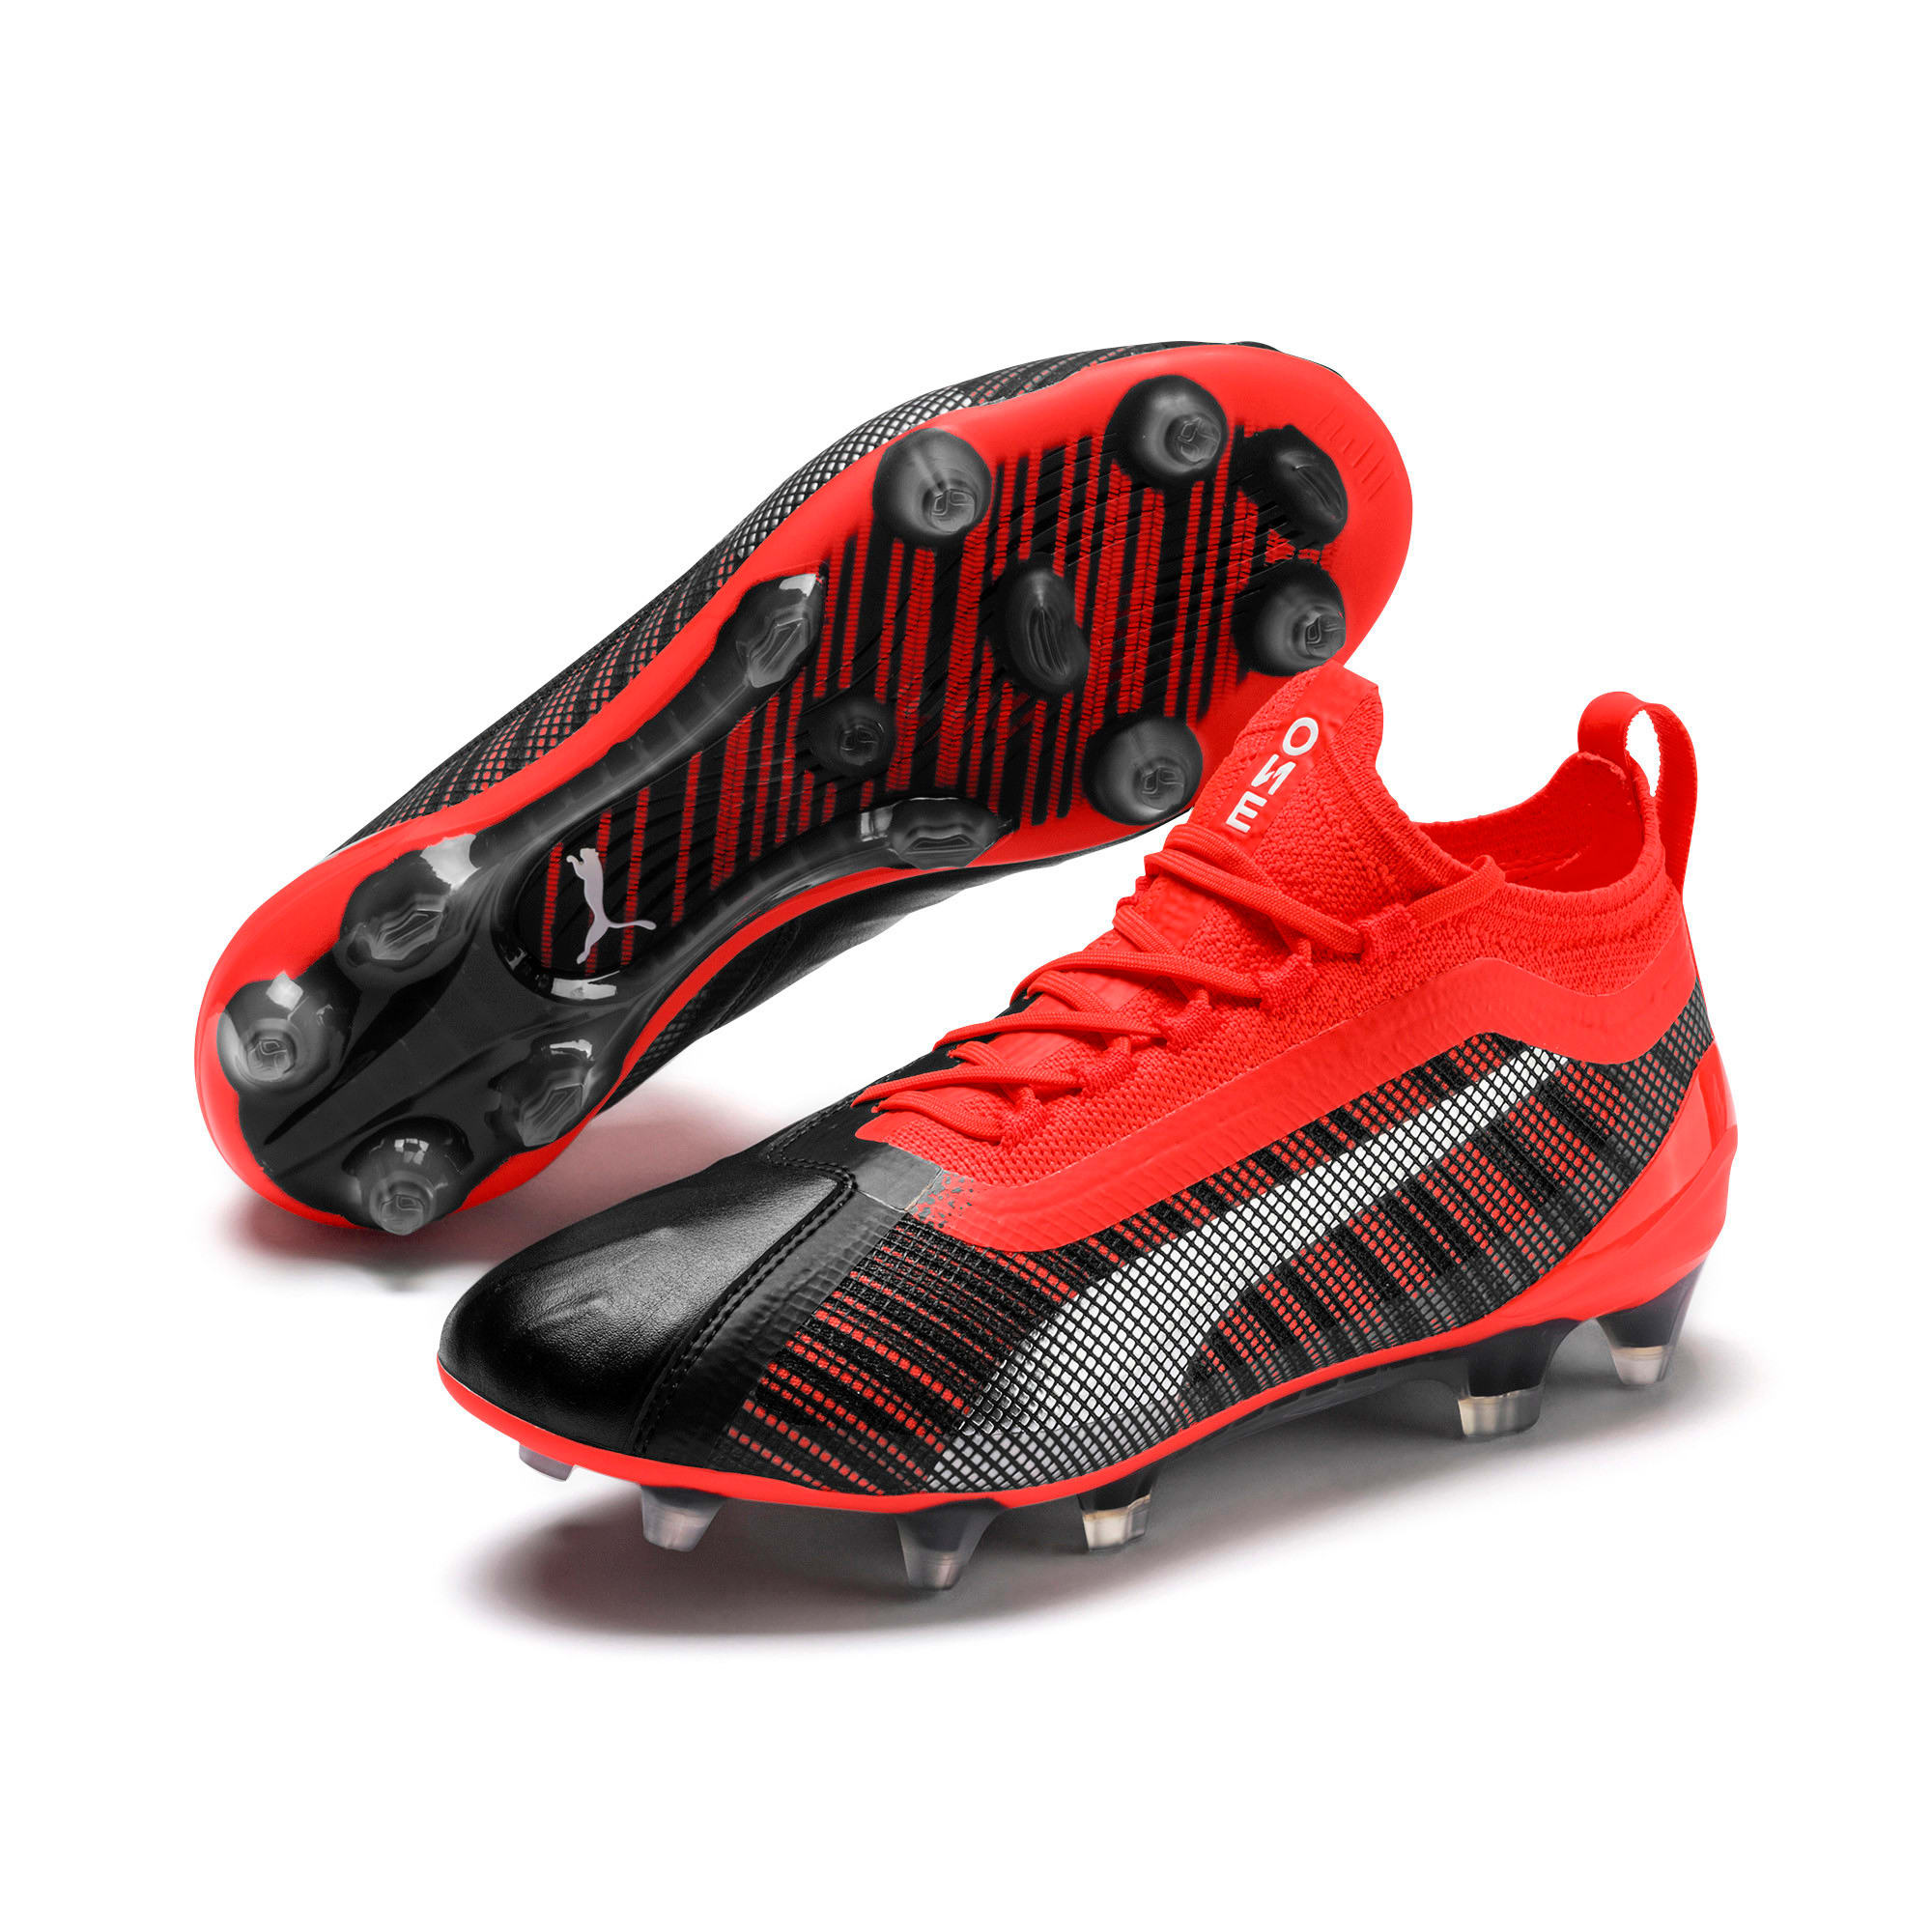 Thumbnail 2 of PUMA ONE 5.1 FG/AG Soccer Cleats JR, Black-Nrgy Red-Aged Silver, medium